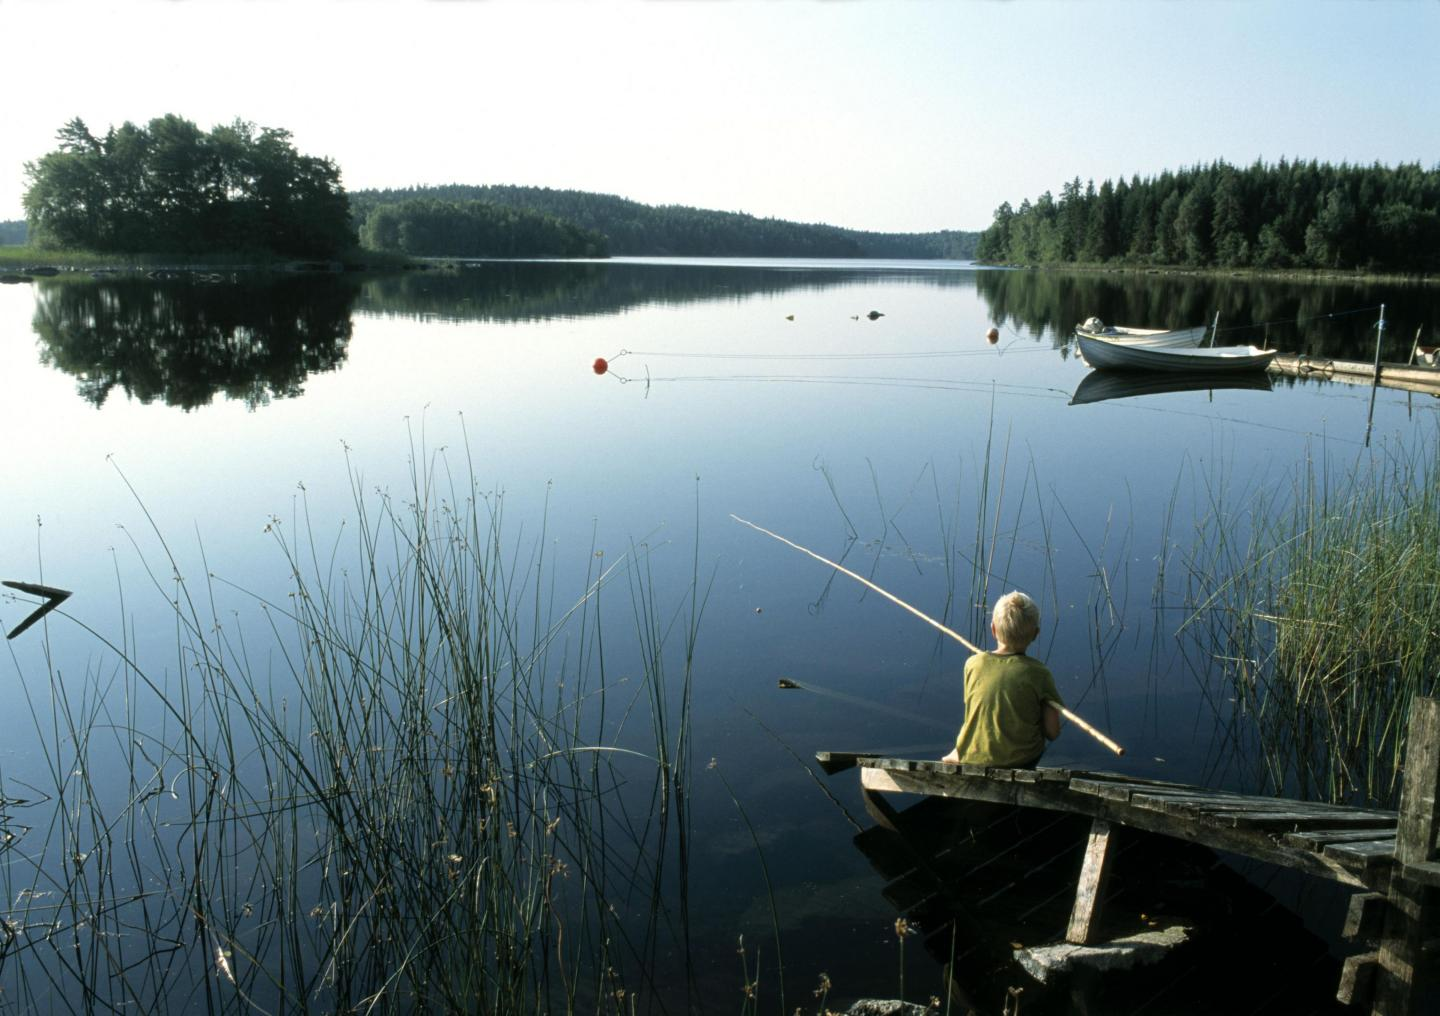 Boy fishing at Lake Immeln